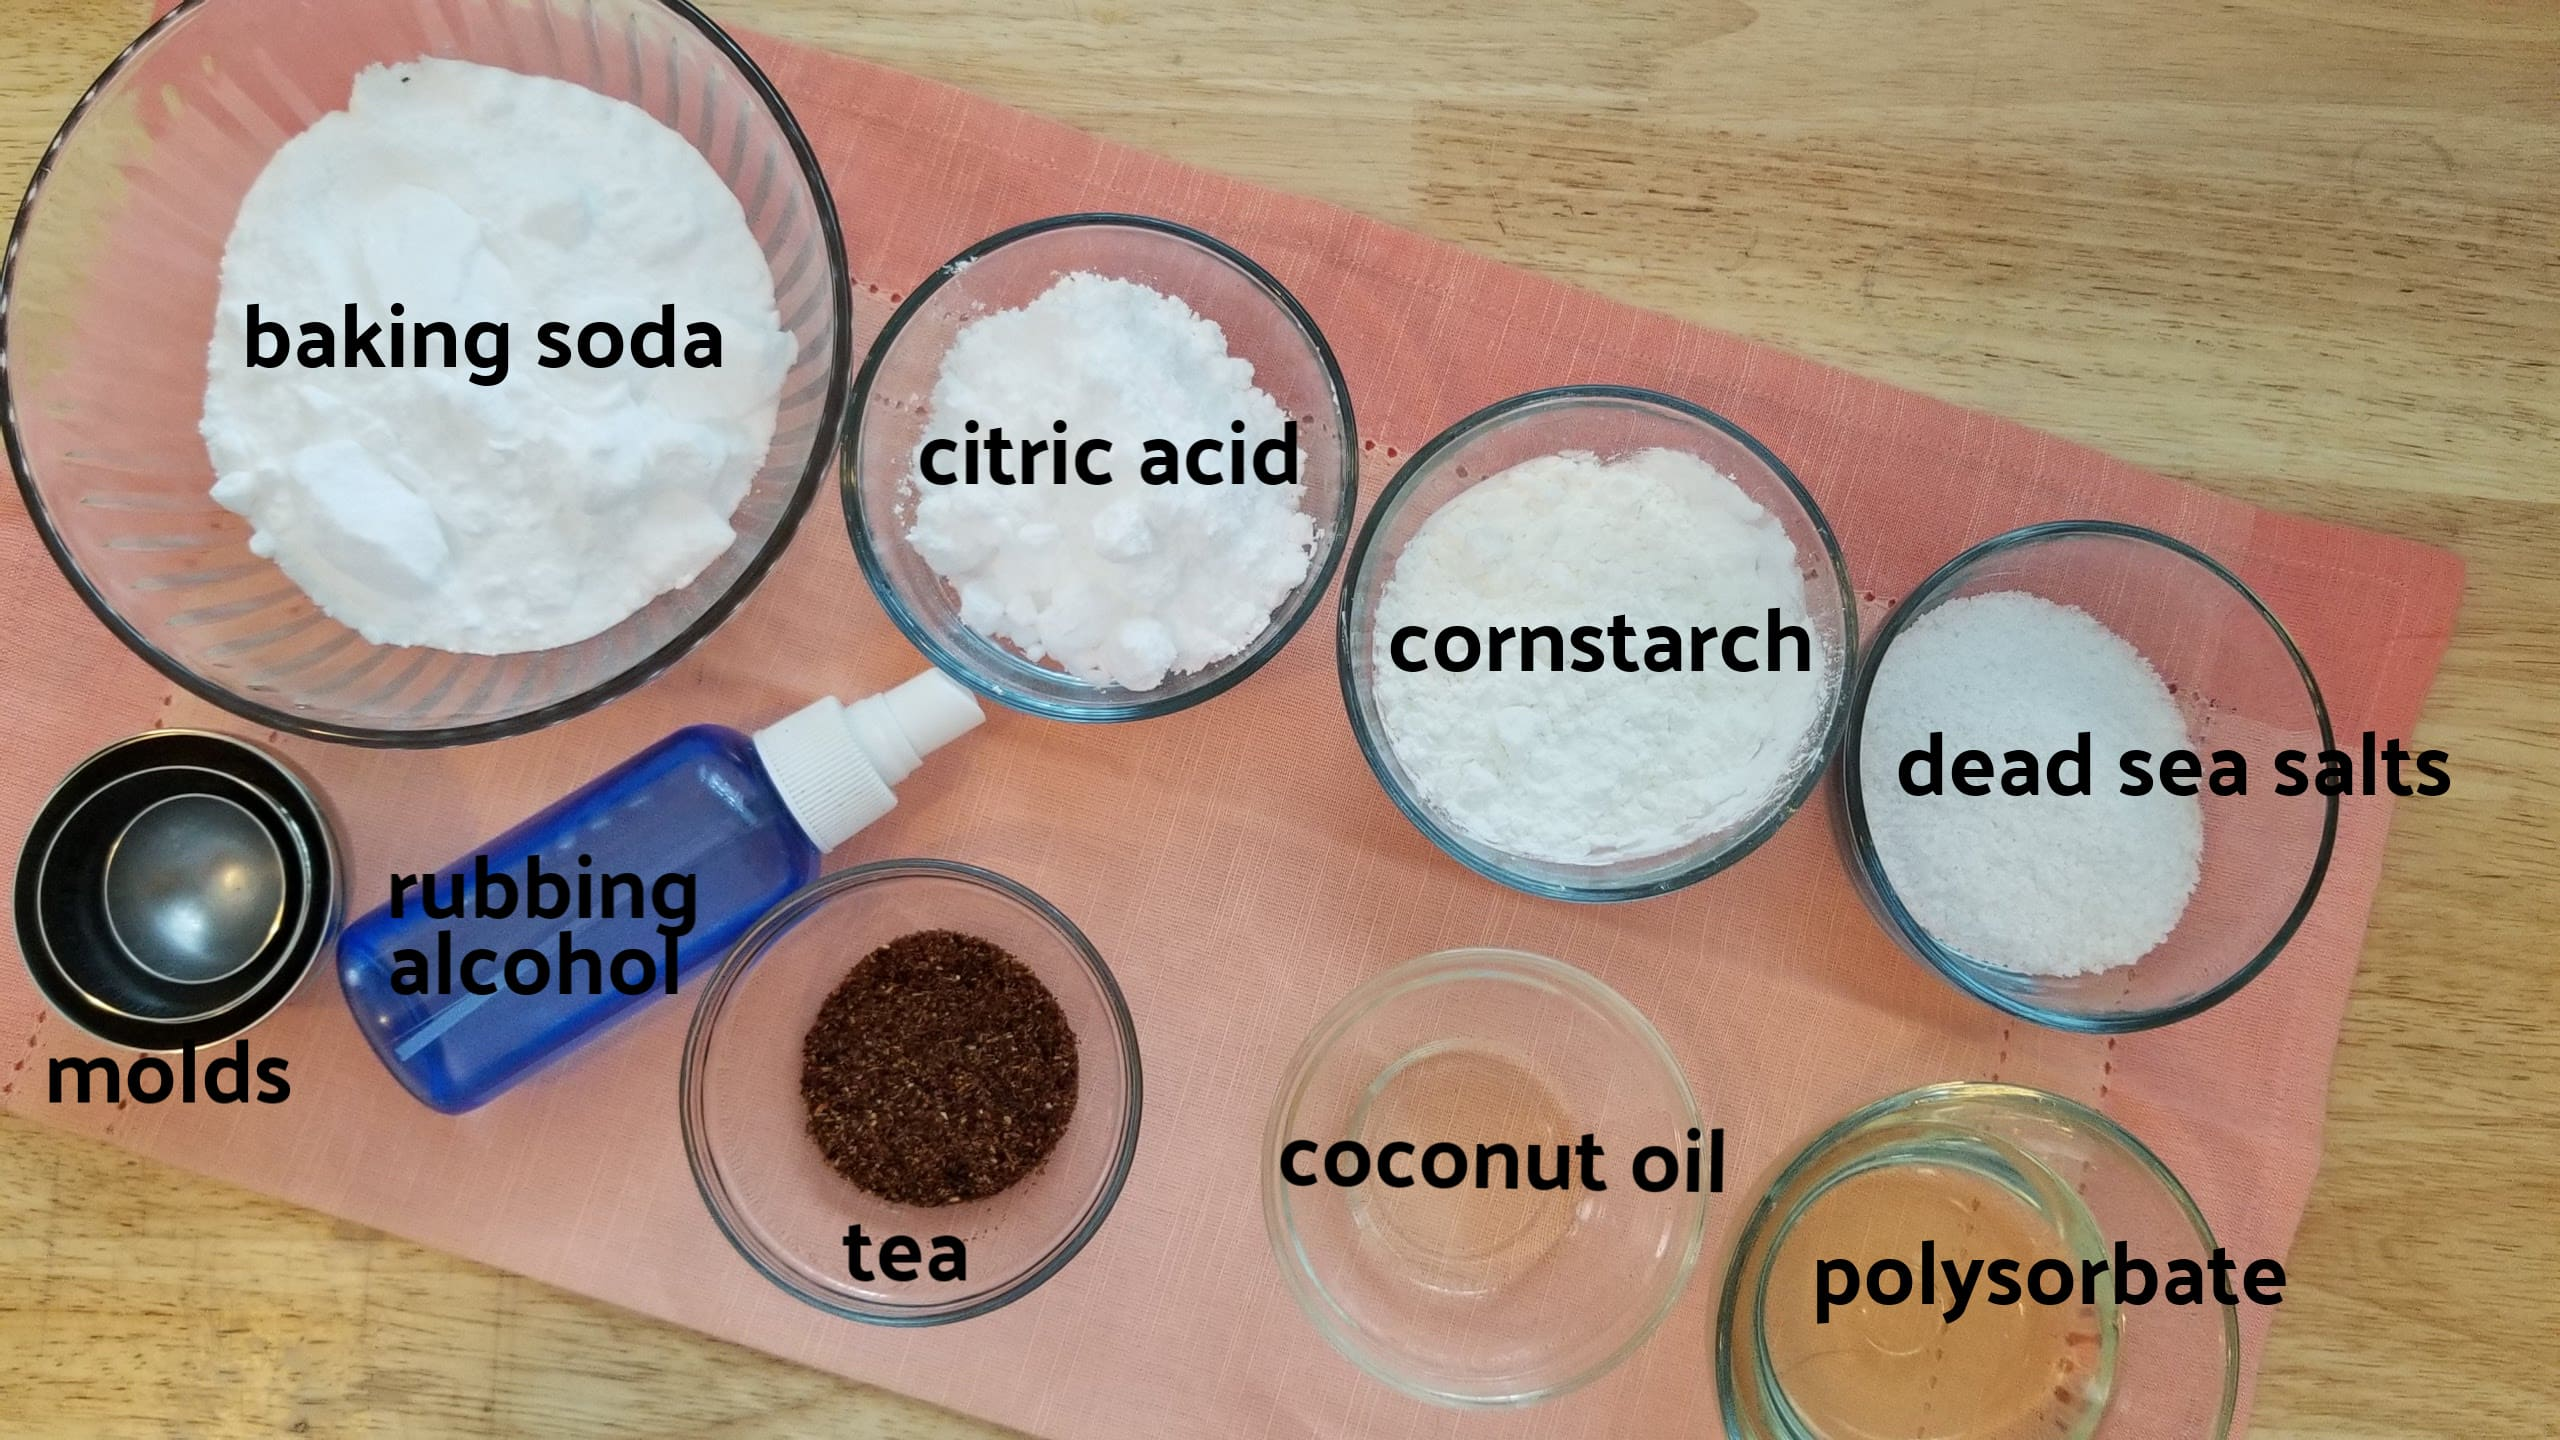 Ingredients for making tea infused bath bombs